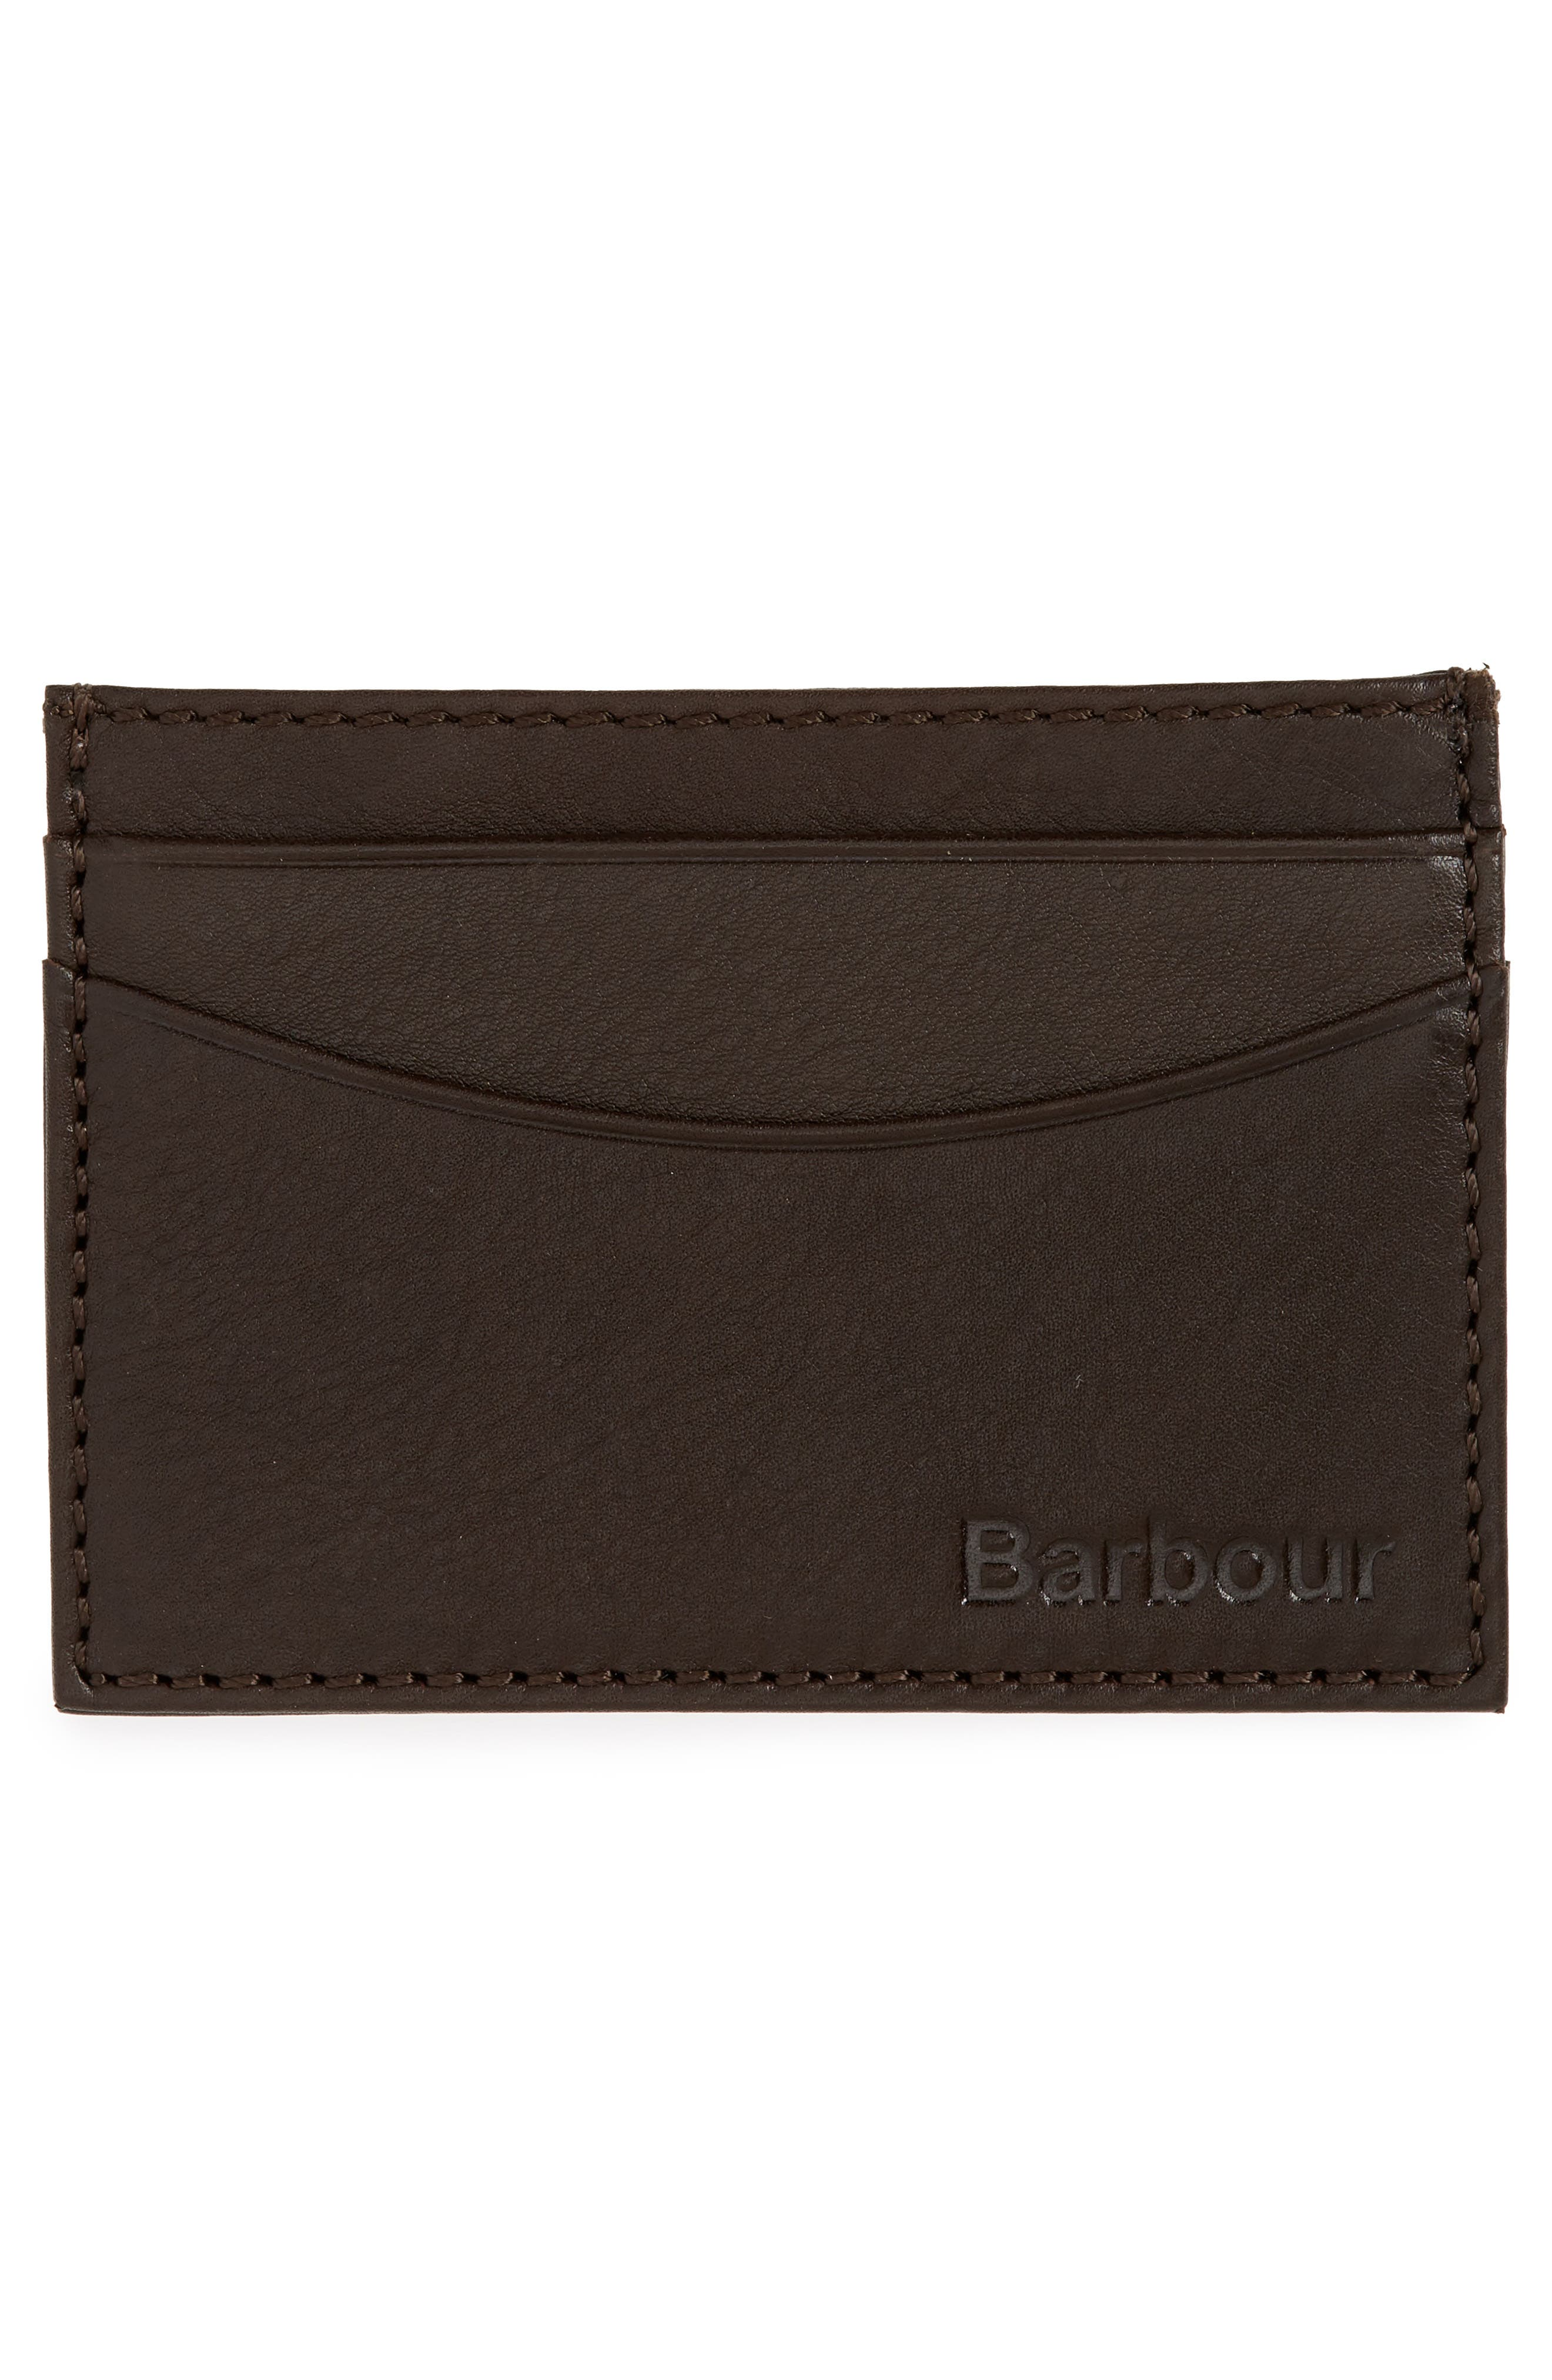 Leather Card Case,                             Alternate thumbnail 2, color,                             200